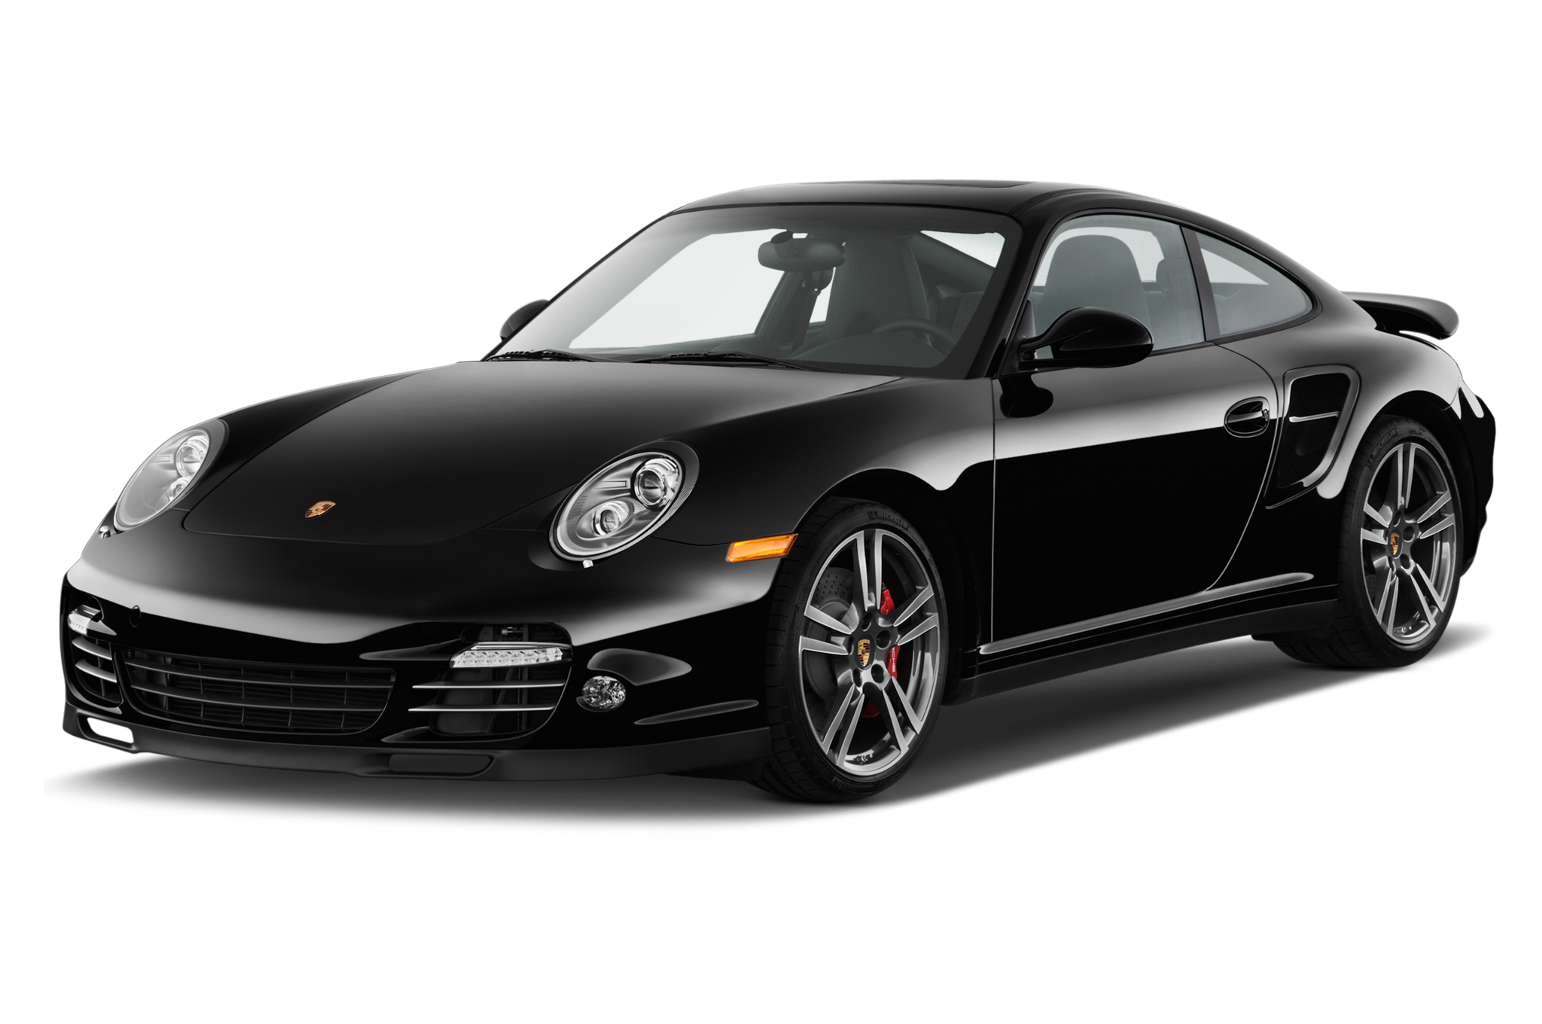 Car turbo clipart clipart library download porsche 911 turbo black car front angle freetoedit... clipart library download